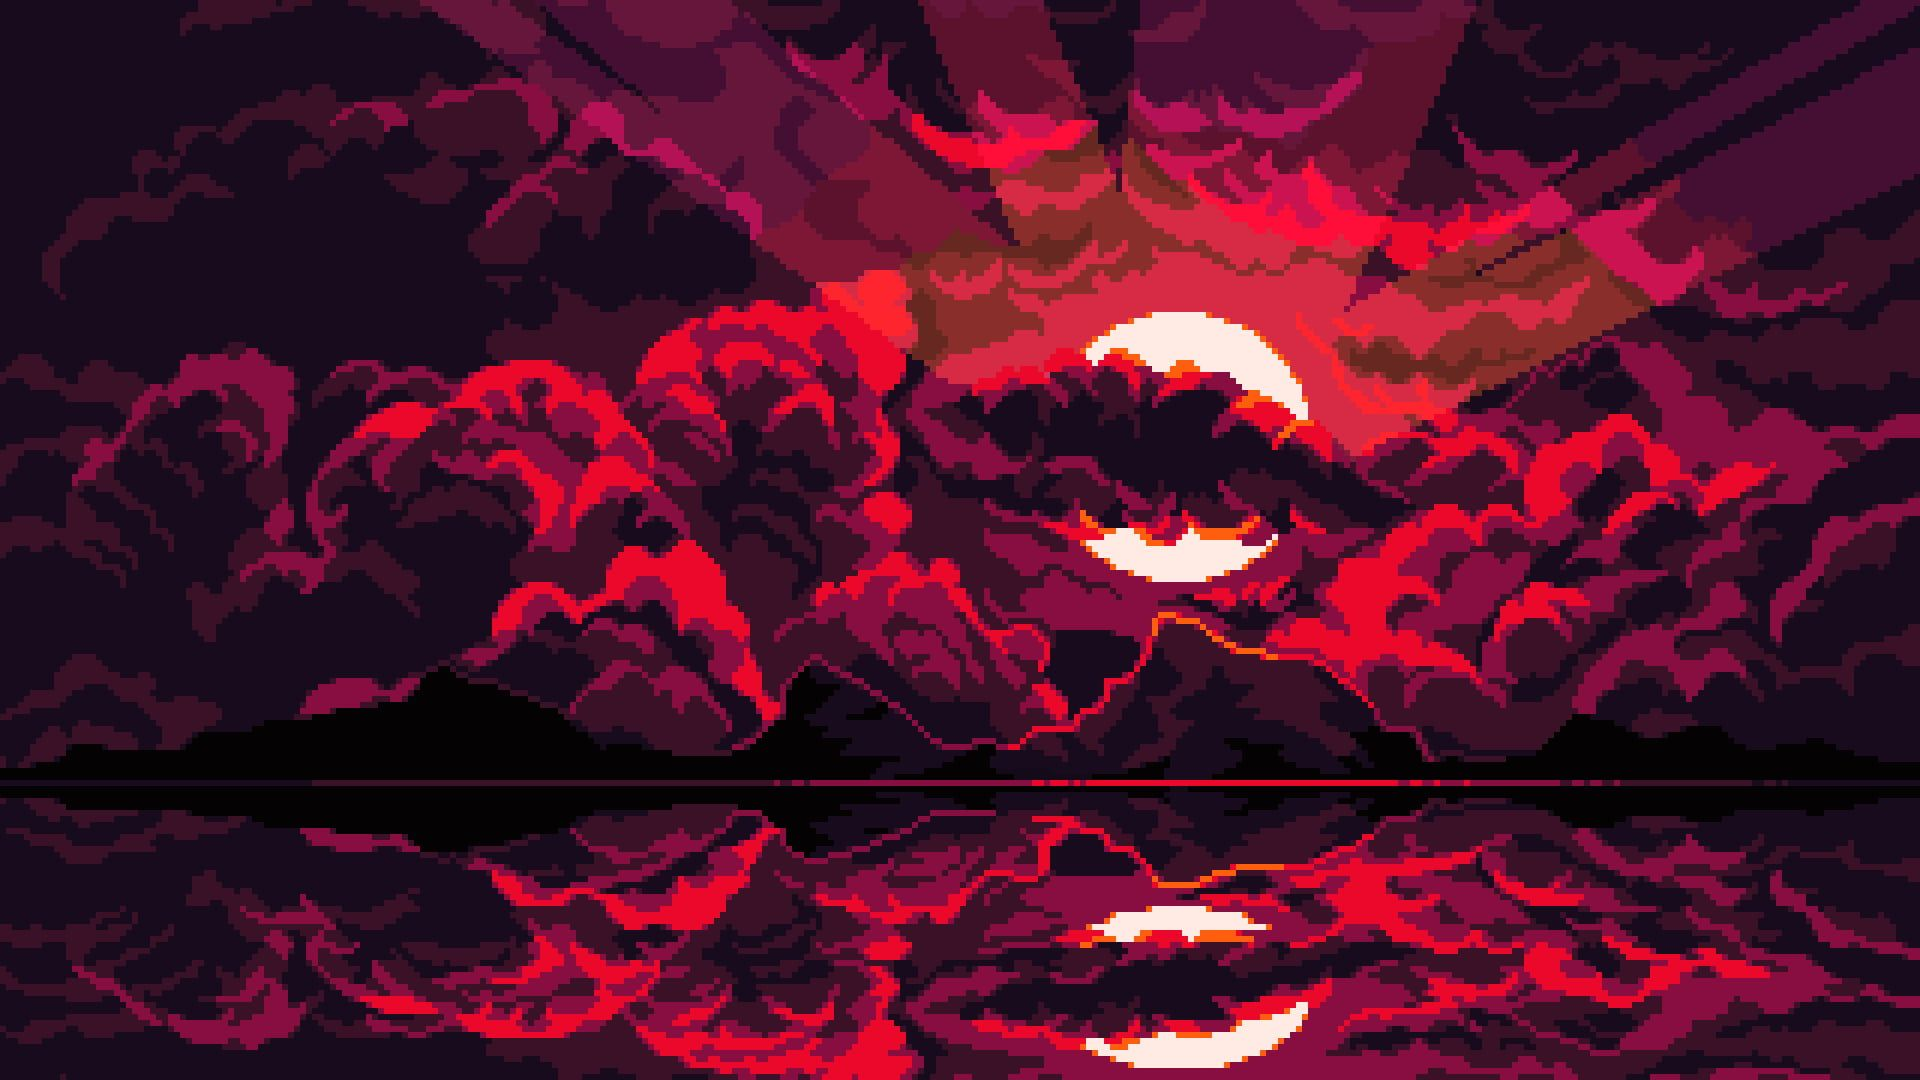 Pixel Art Clouds Moon Reflection Dark Background 1080p Wallpaper Hdwallpaper Desktop In 2020 Dark Background Wallpaper Pixel Art Vaporwave Wallpaper